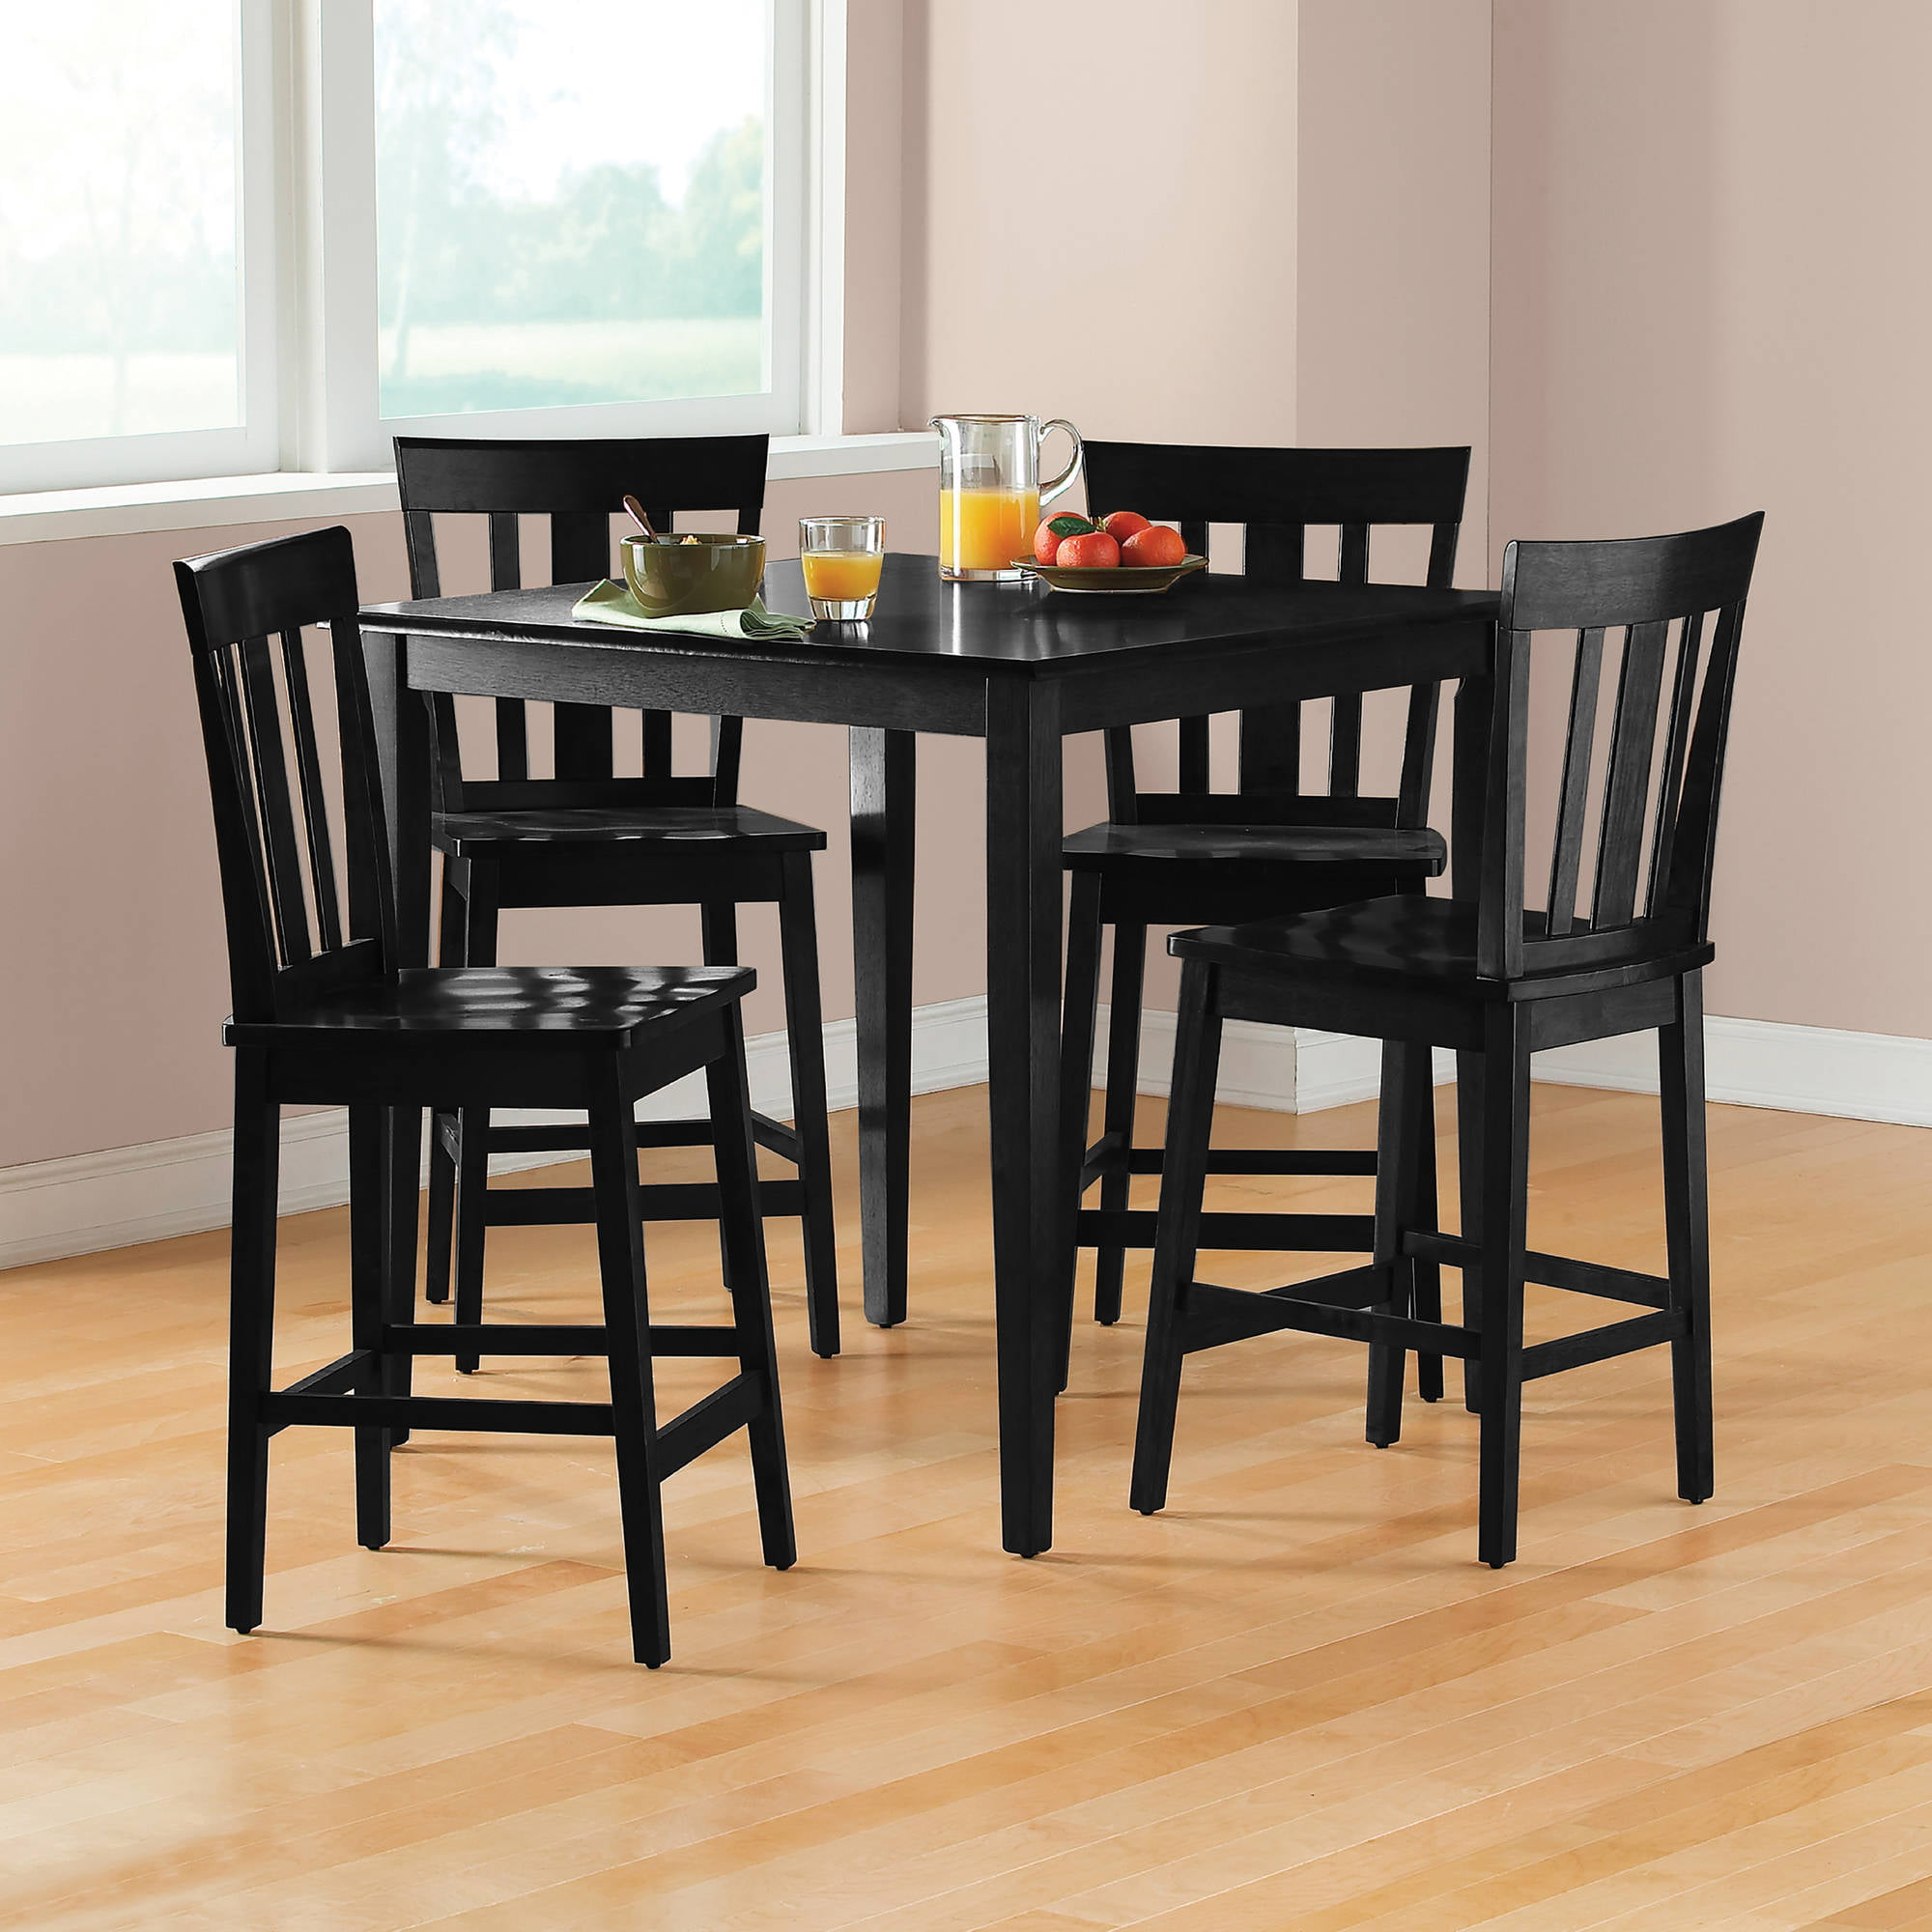 Mainstays 5-Piece Counter-Height Dining Set- Multiple Colors - Walmart.com & Mainstays 5-Piece Counter-Height Dining Set- Multiple Colors ...